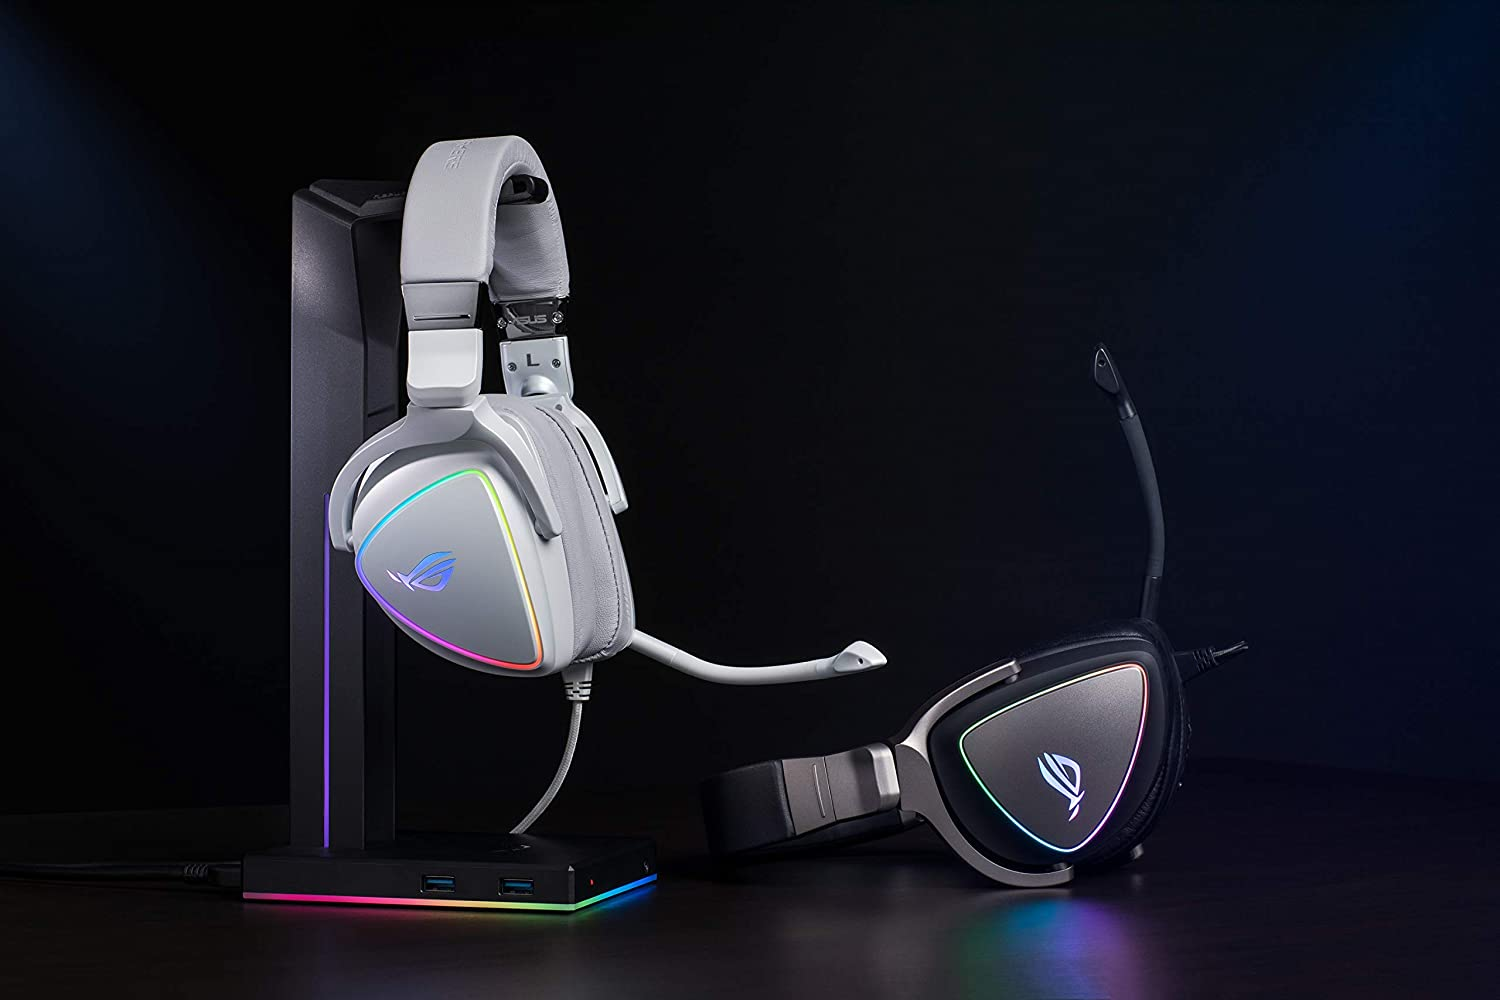 Circular RBG Lighting Effect and USB-C Connector for PCs ASUS ROG Delta RGB Gaming Headset with Hi-Res ESS Quad-DAC Consoles and Mobile Gaming